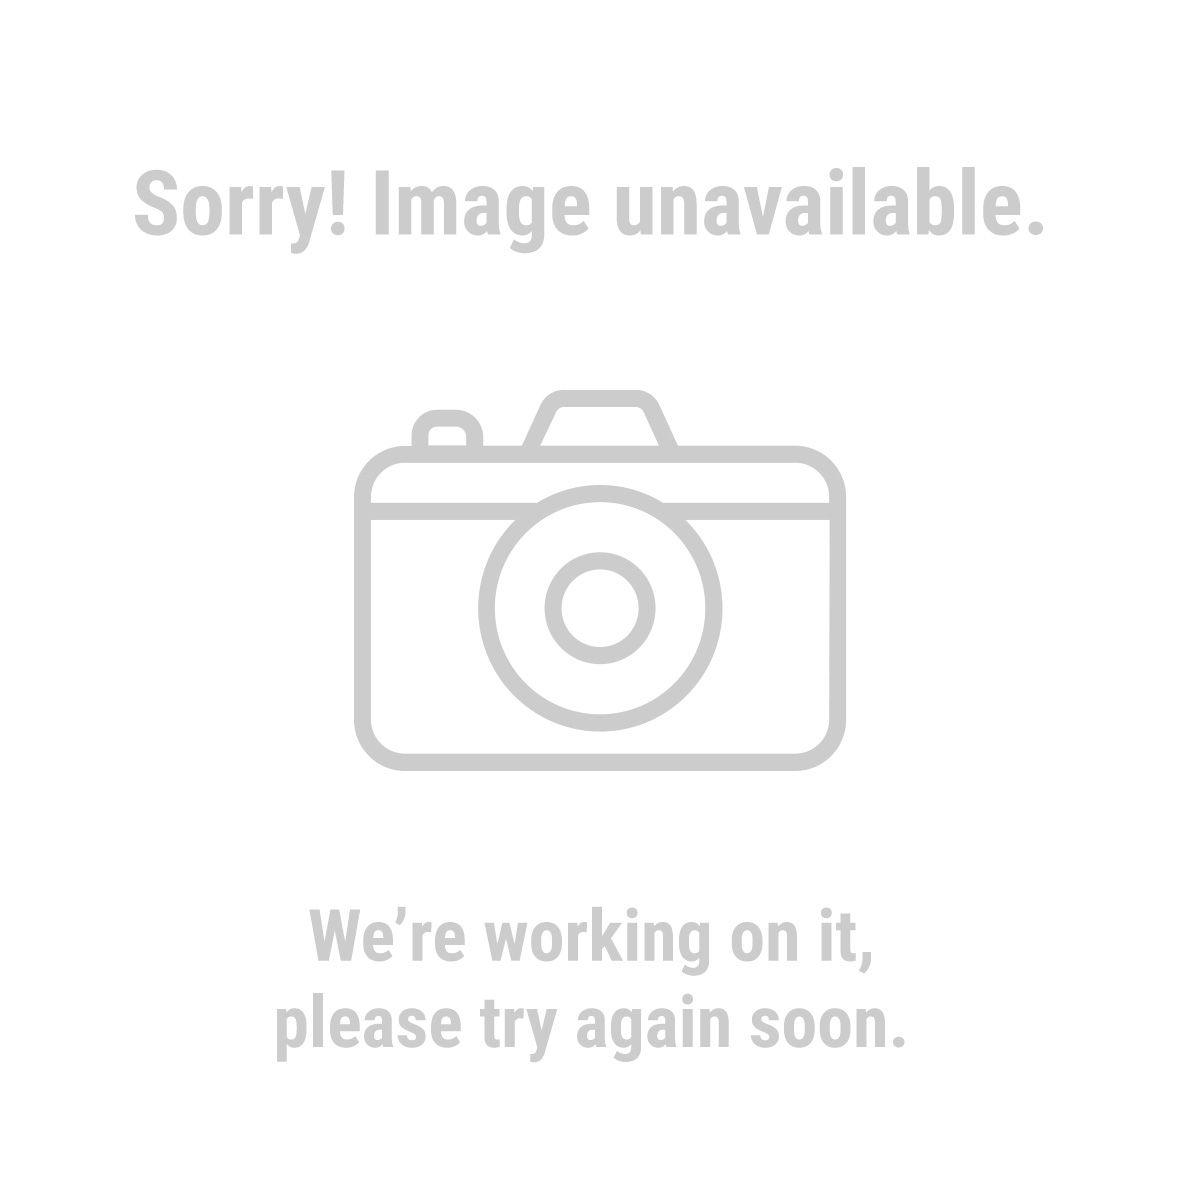 Pittsburgh 7718 Aluminum Rafter Angle Square